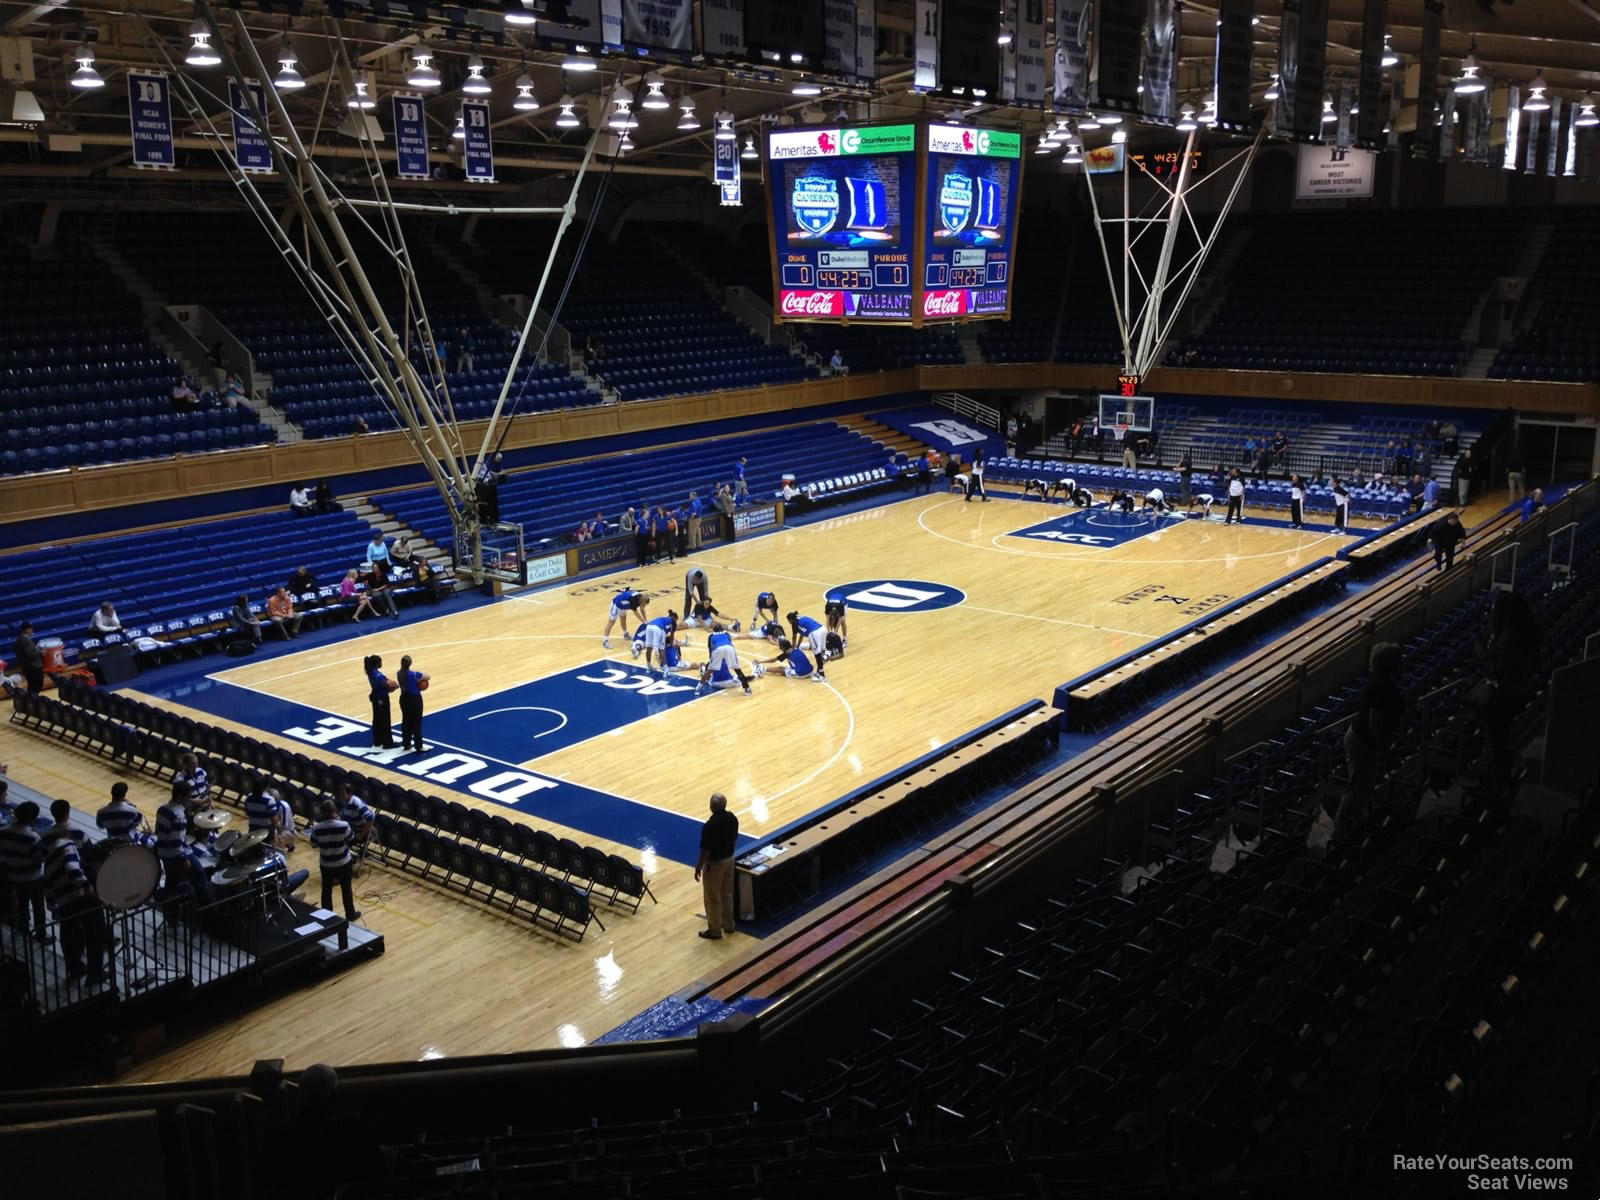 Cameron Indoor Stadium Seating Chart With Rows And Seat